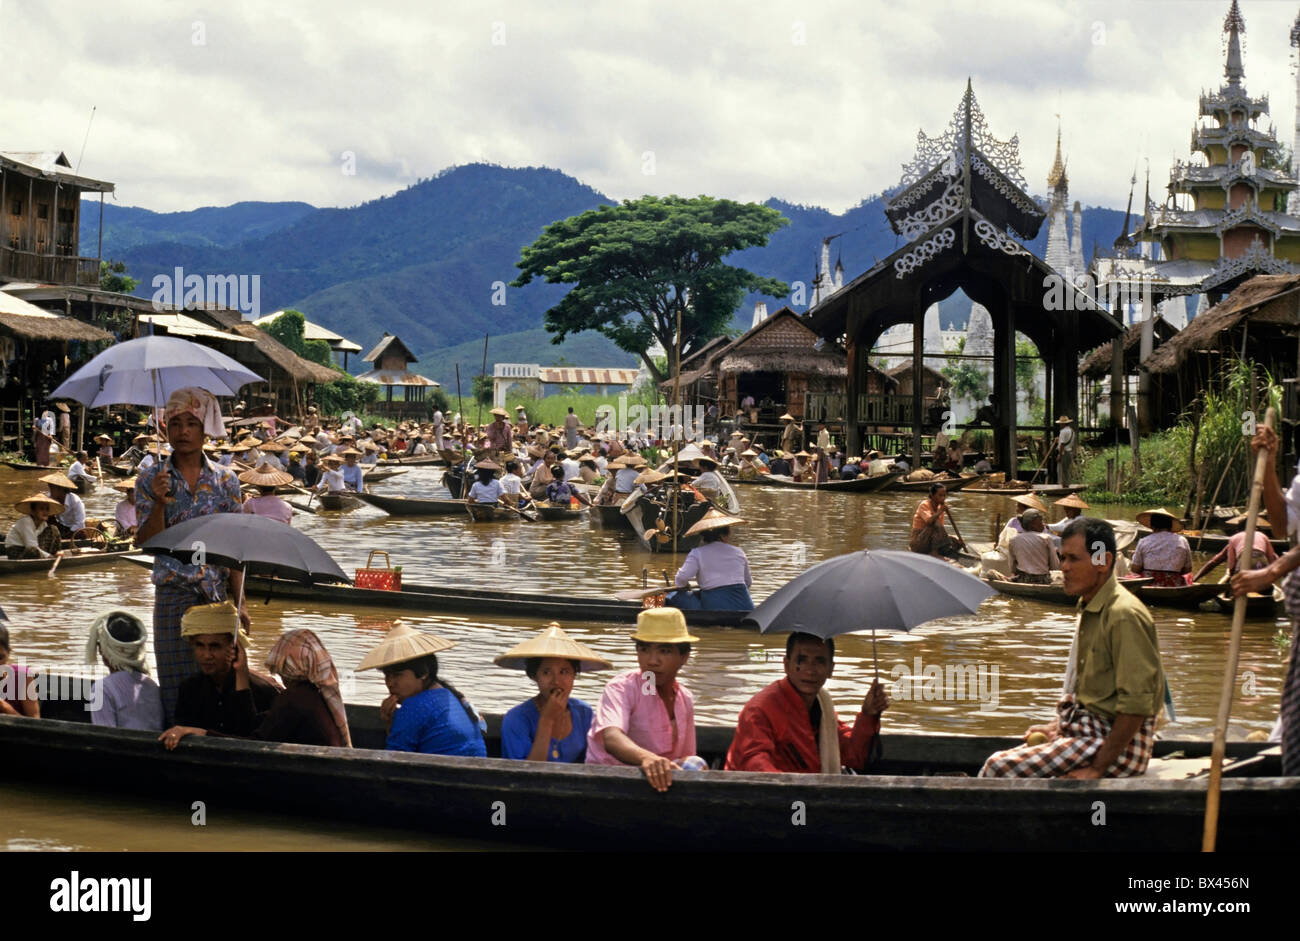 Intha people on boats at the Yumana Floating Market on Inle Lake, Nyaungshwe Township, Taunggyi District, Shan State, Burma. Stock Photo